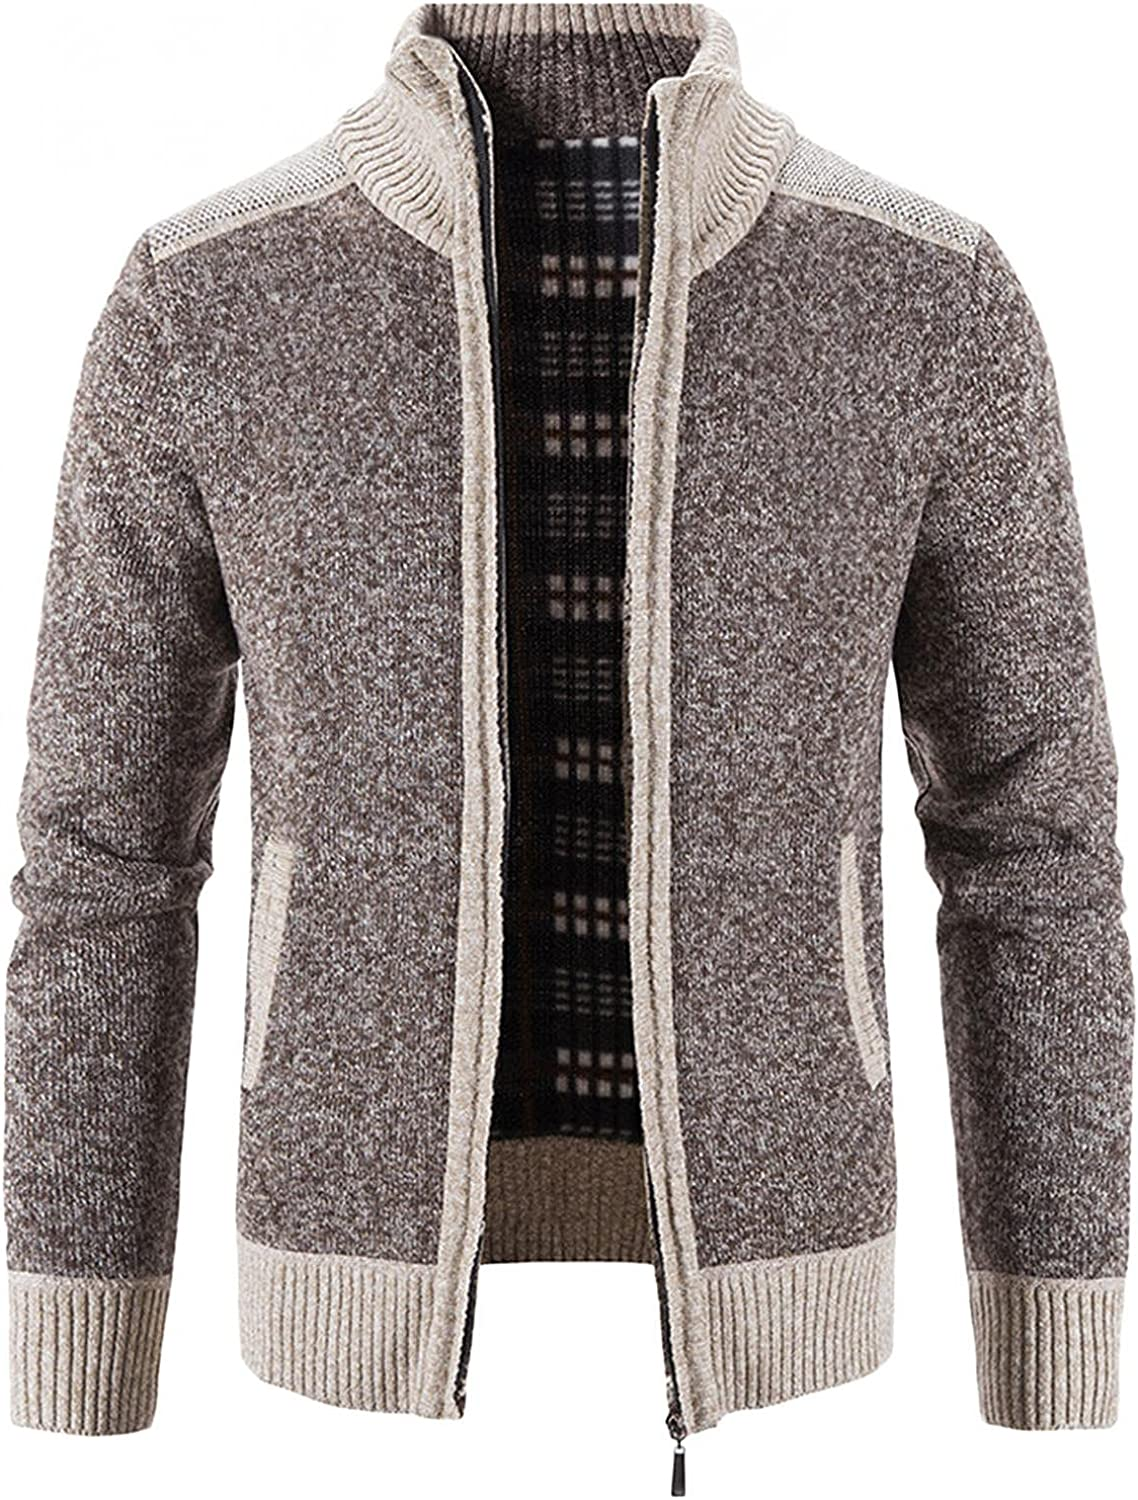 Mens Knitted Cardigan Sweater Coat Long Sleeve Stand Collar Full Zip Thick Blouse Classic Color Block Striped Outwear